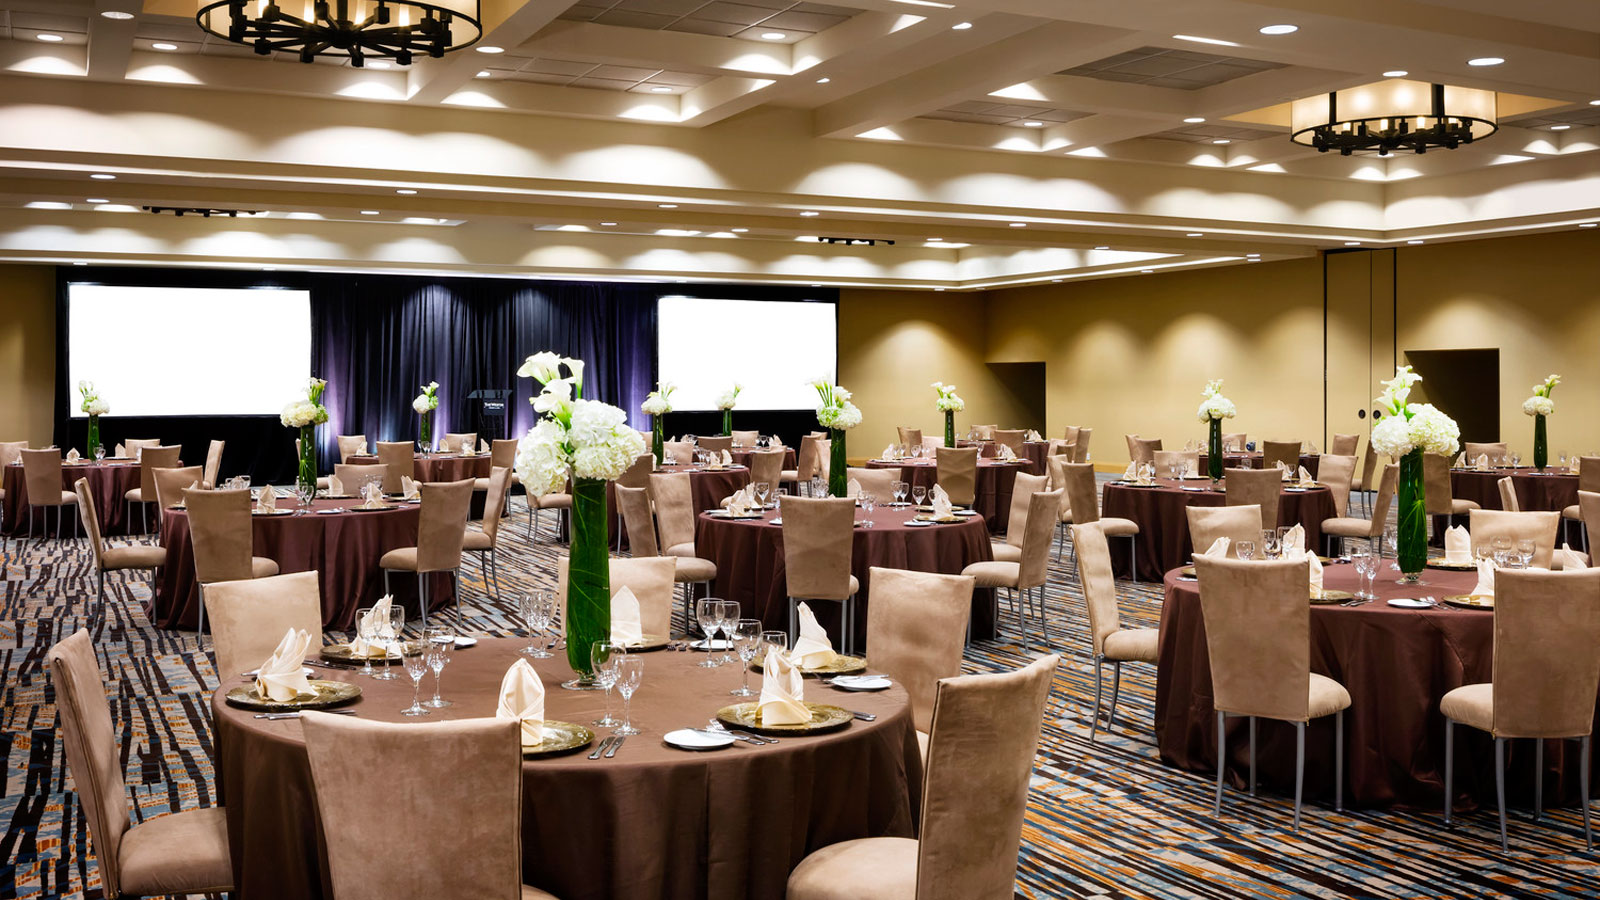 Whistler Wedding Venues - Emerald Ballroom Gala